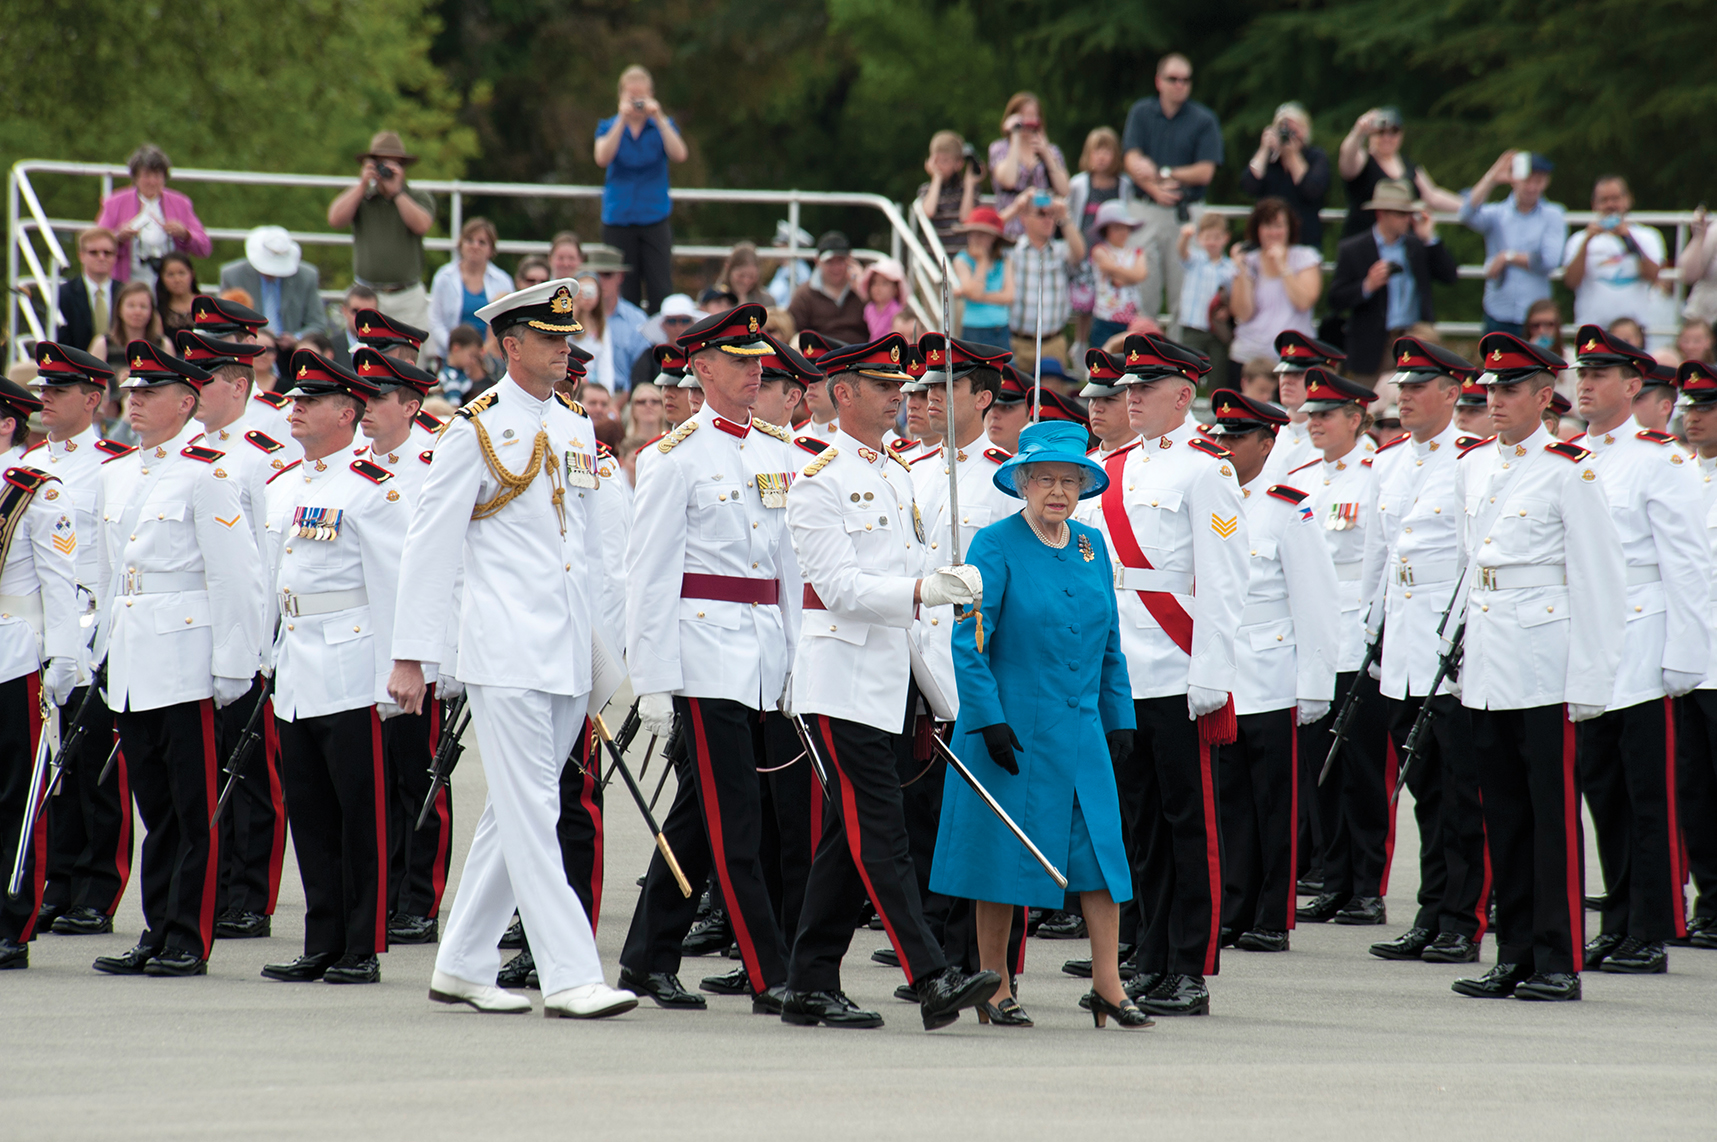 The Royal Military College Corps of Staff Cadets is presented with New Colours By Her Majesty the Queen.